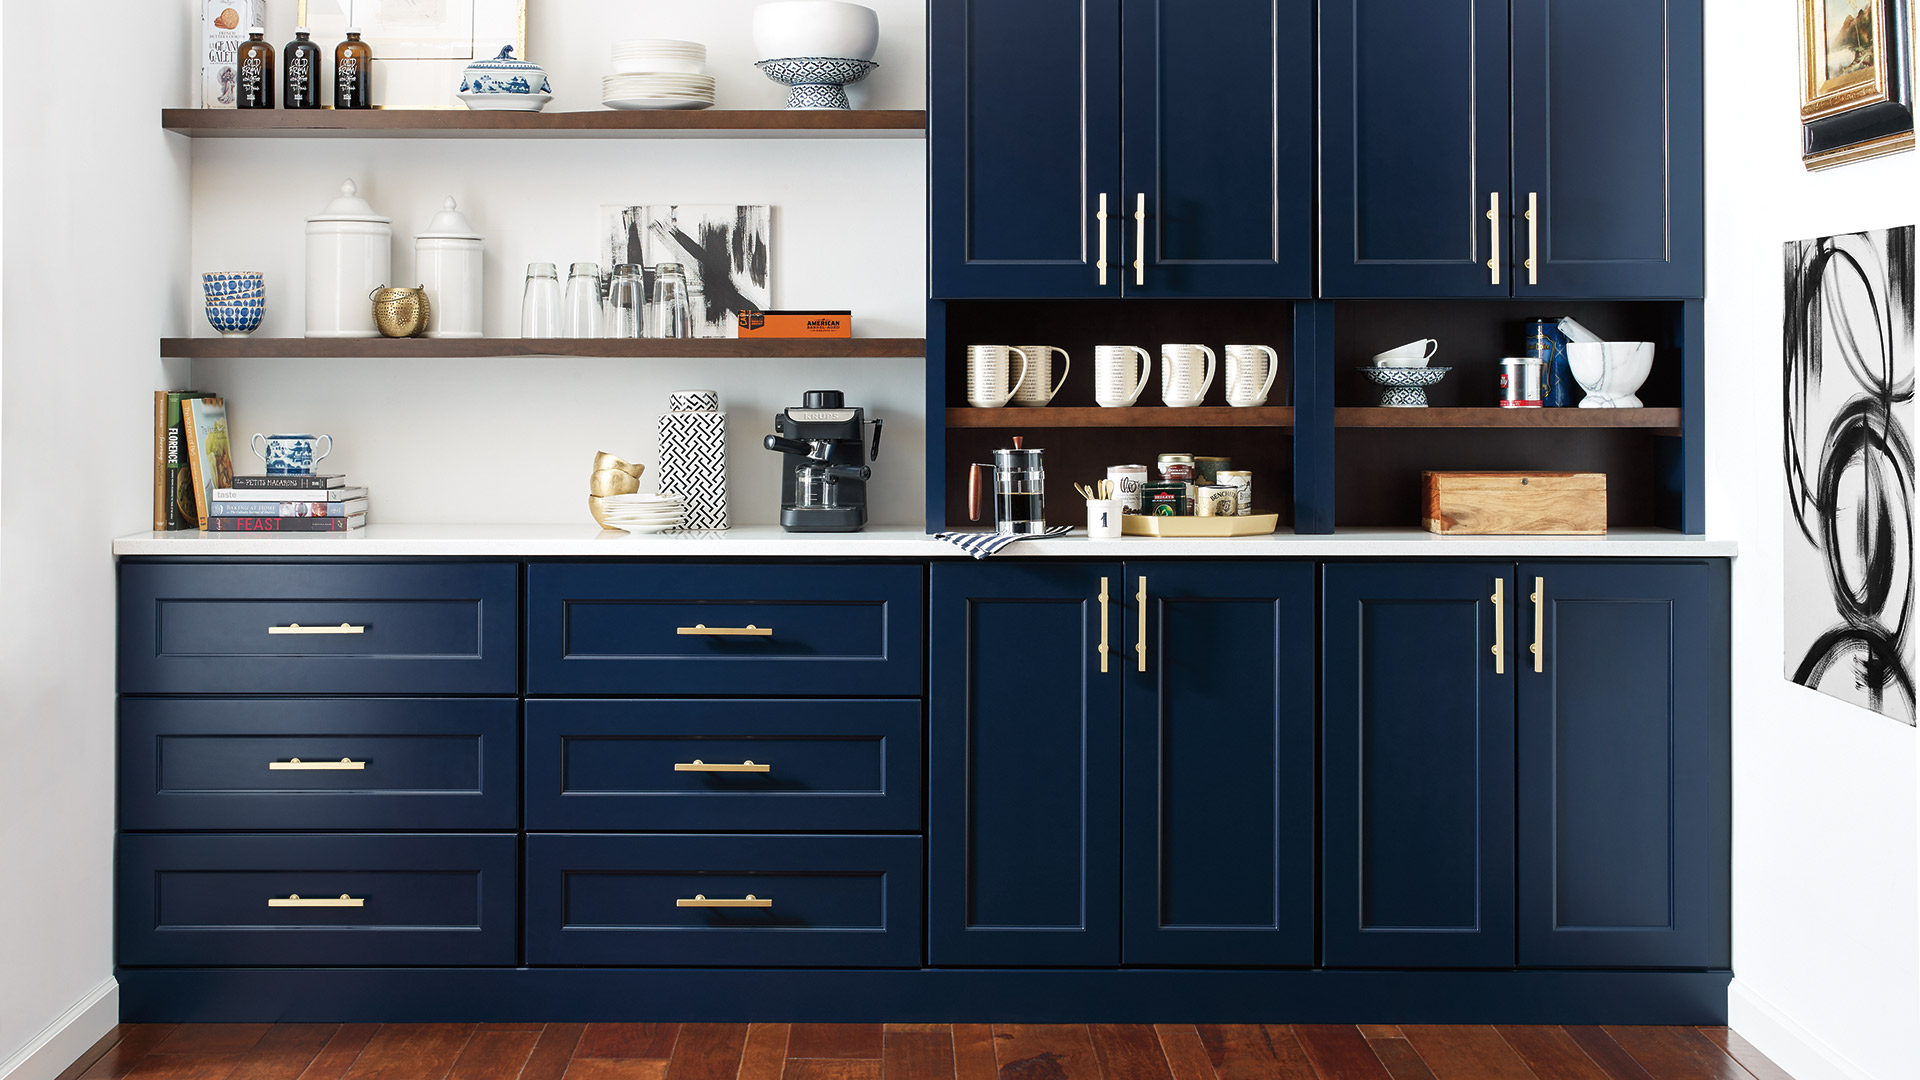 Custom Butler S Pantry Inspiration And Plans: Butler's Pantry With Custom Blue Cabinets